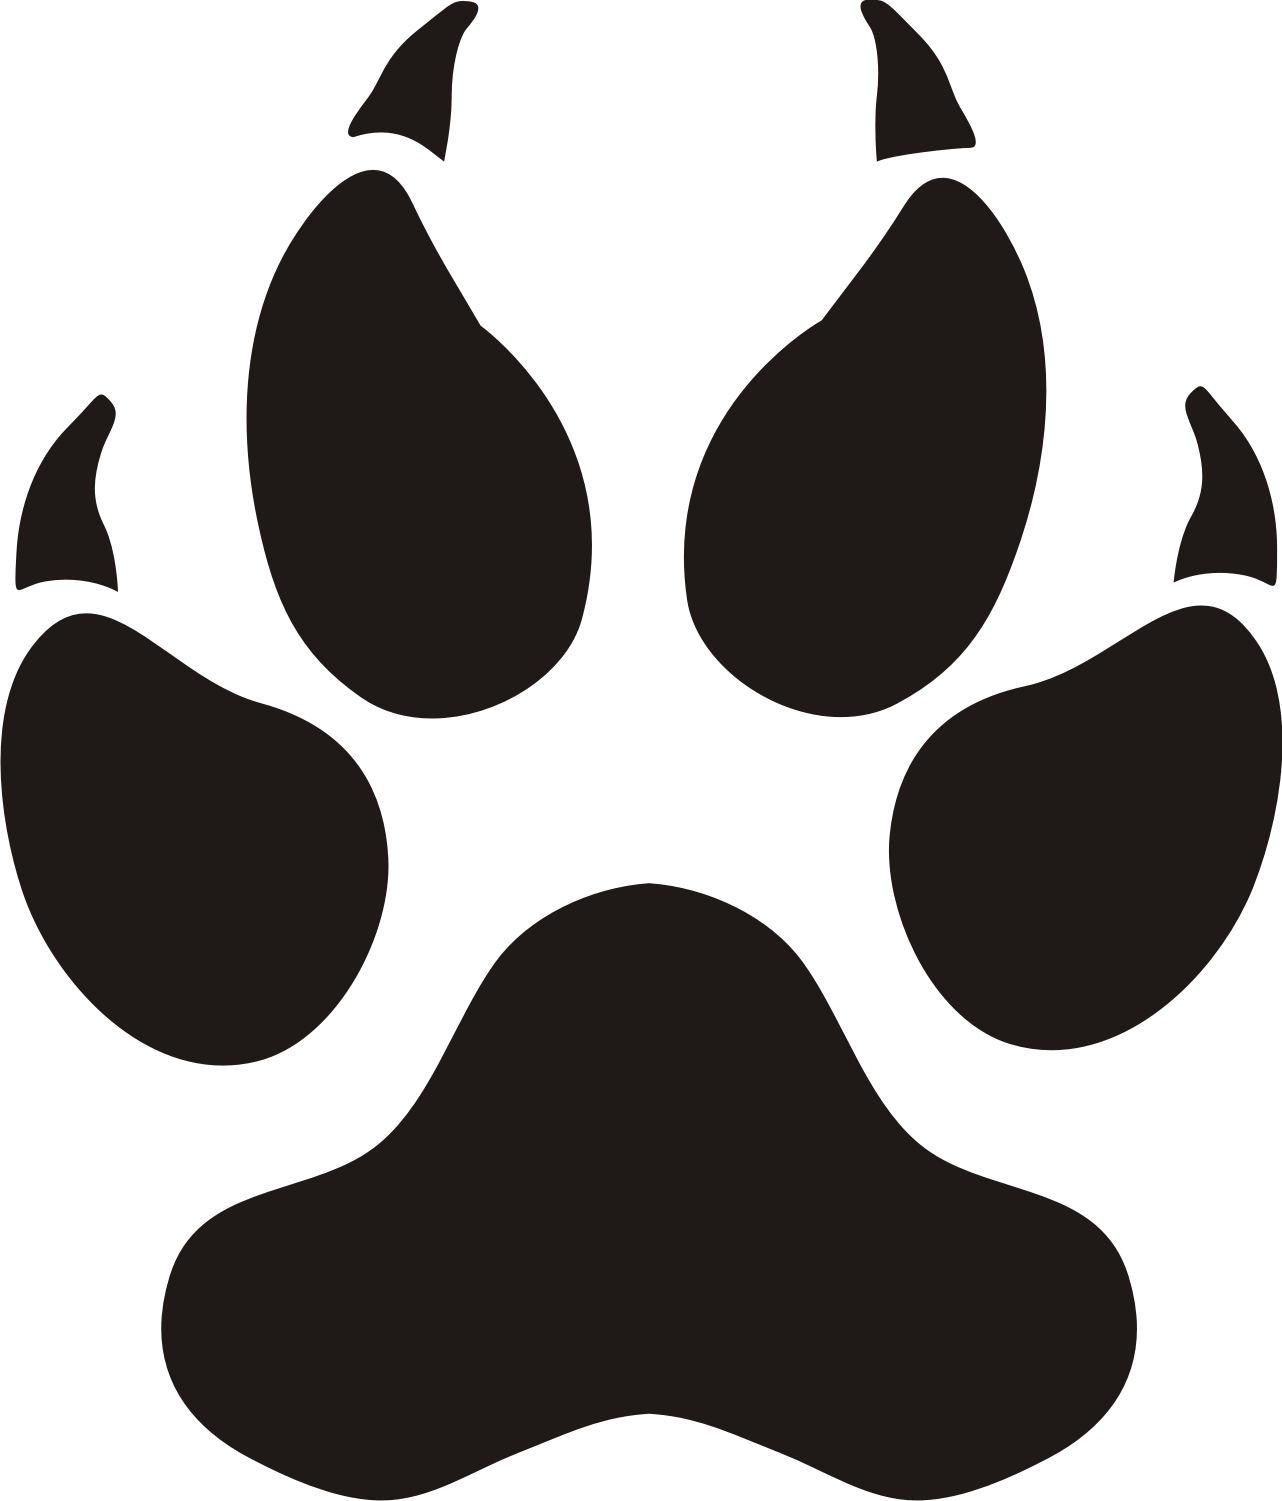 Free Panther Paw, Download Free Clip Art, Free Clip Art on.